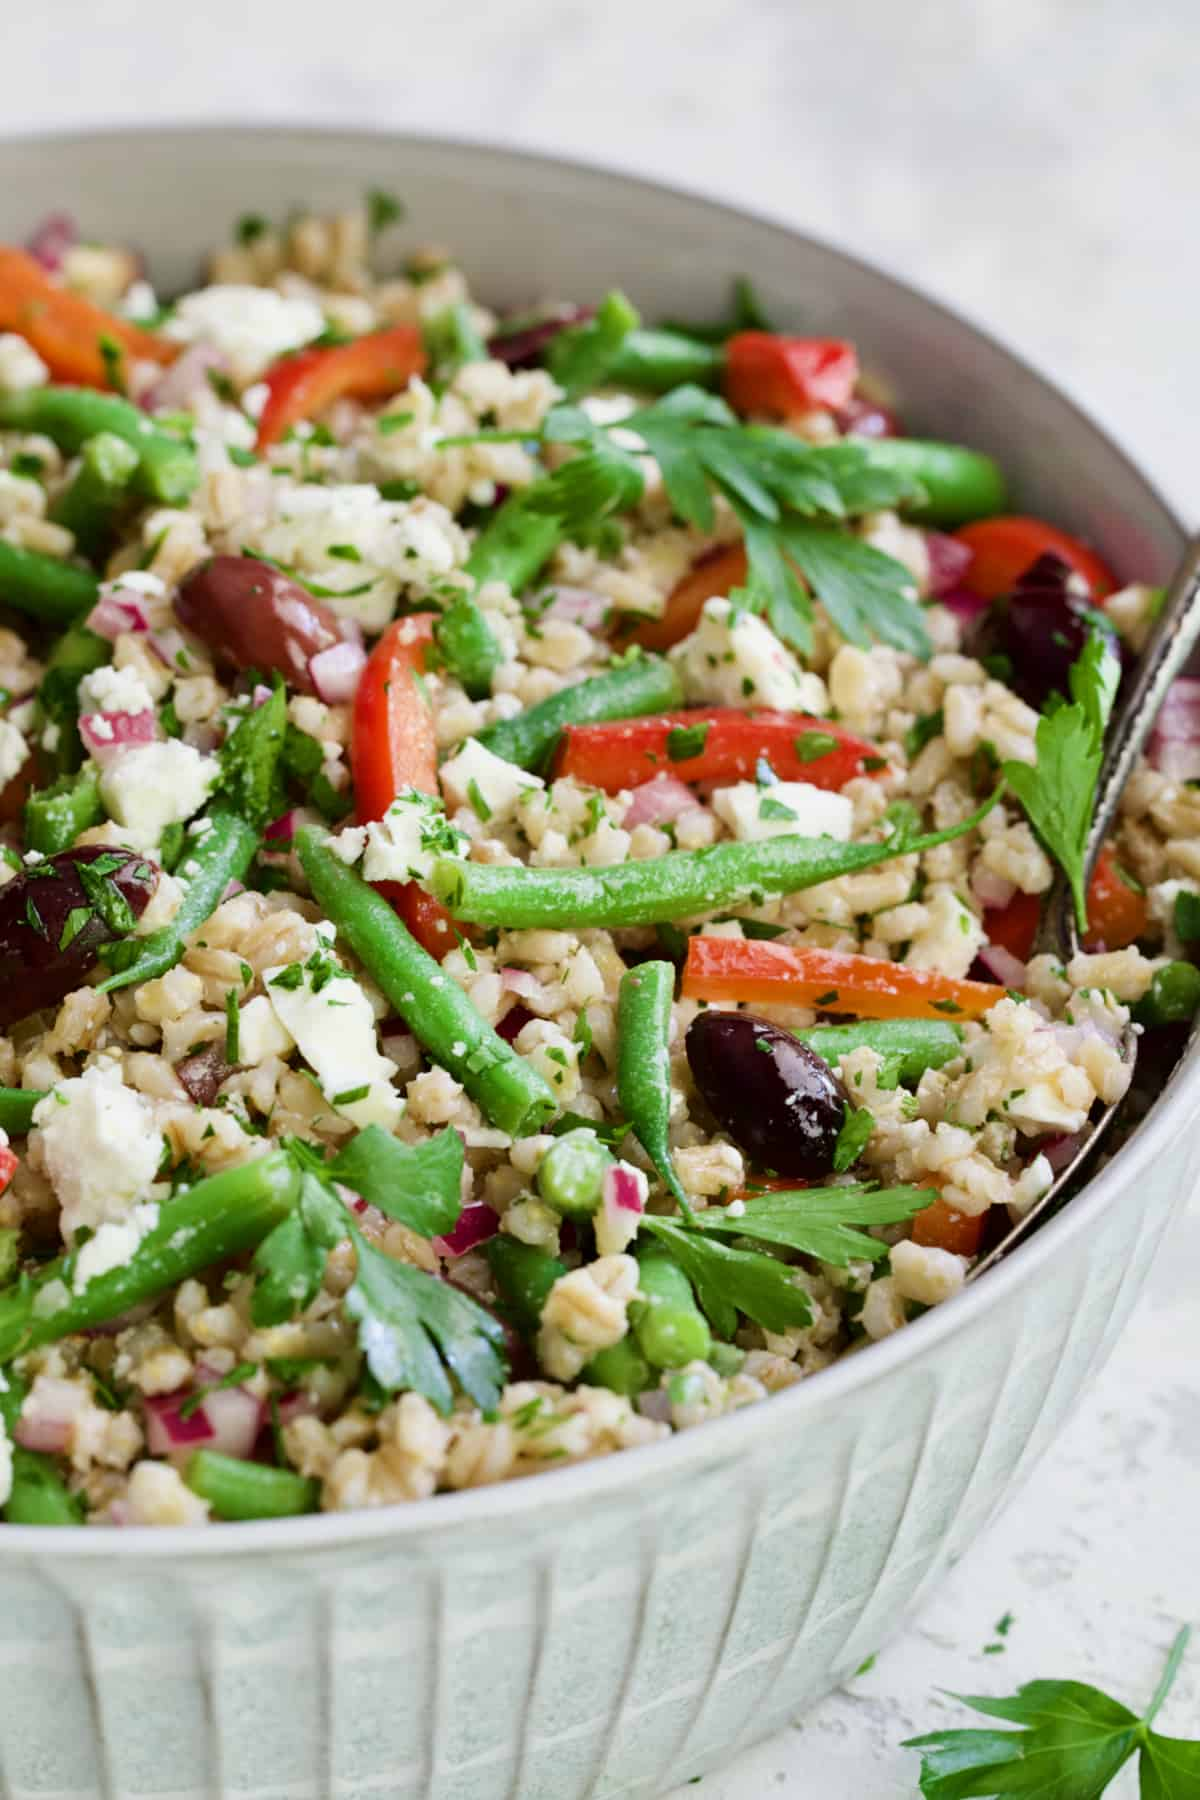 Mediterranean Barley Salad with Green Beans, Red Bell Pepper, Olives and Feta in serving bowl.